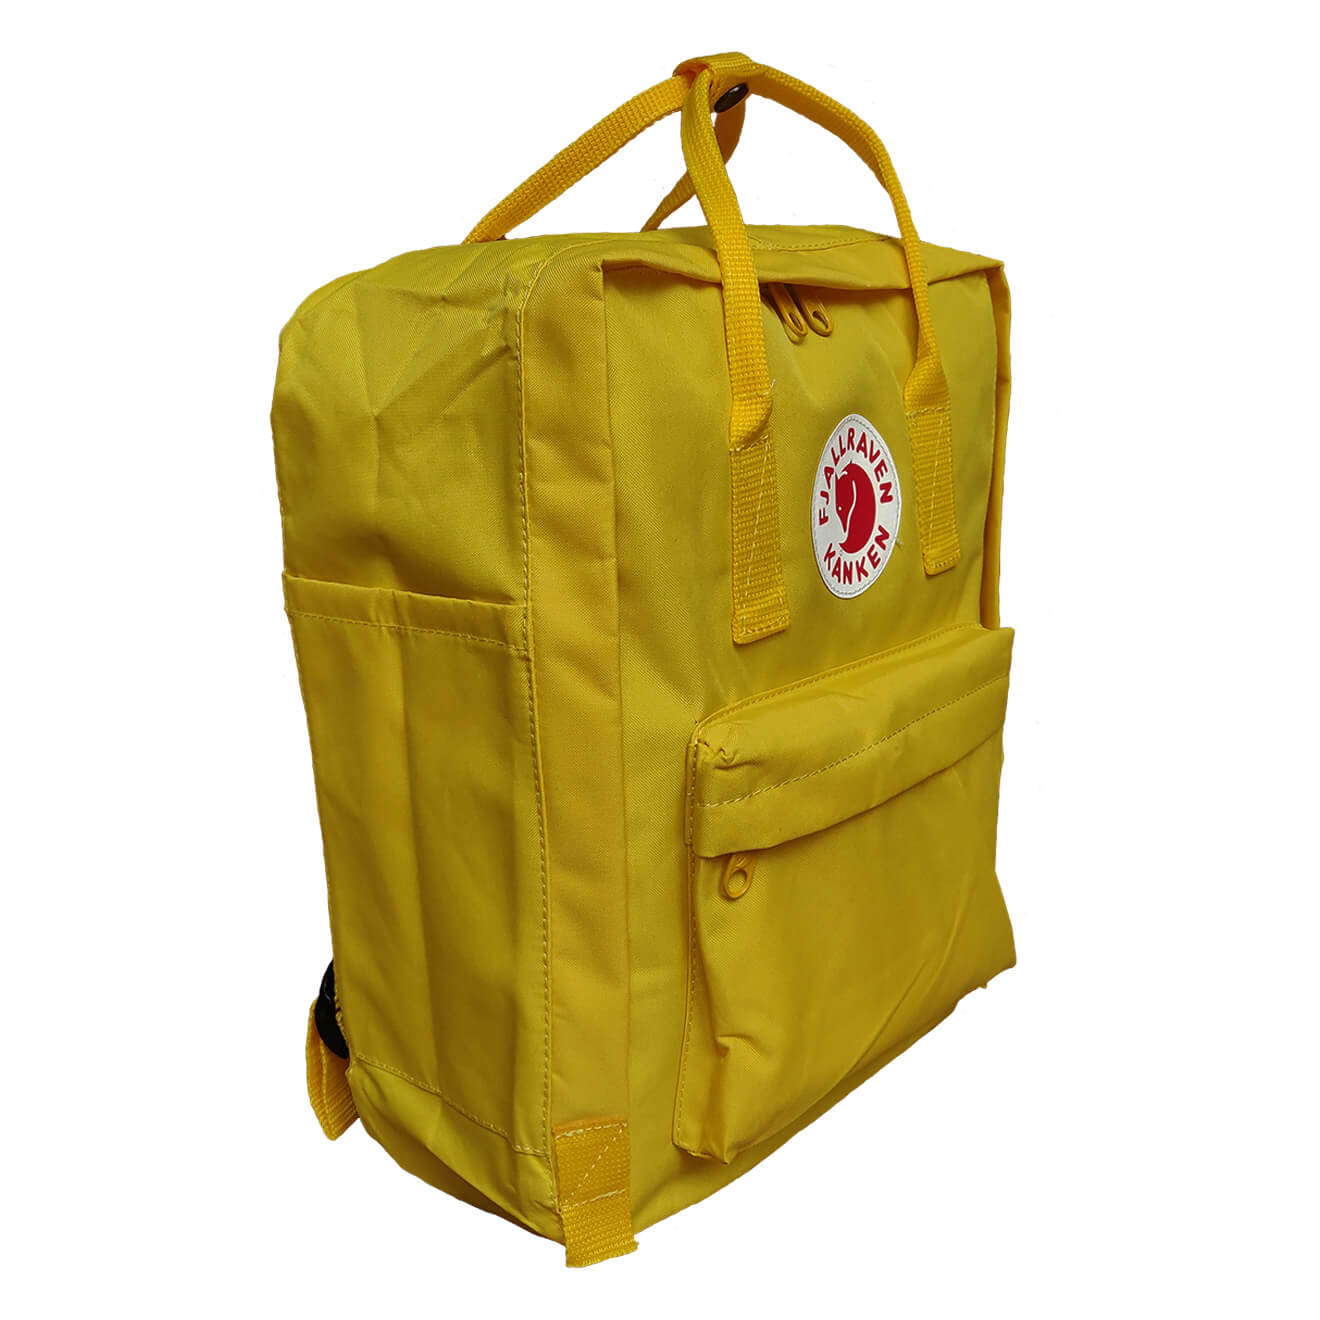 Fjallraven Kanken Classic Backpack In Warm Yellow Fenix Toulouse Royal Blue Pinstripe Pattern